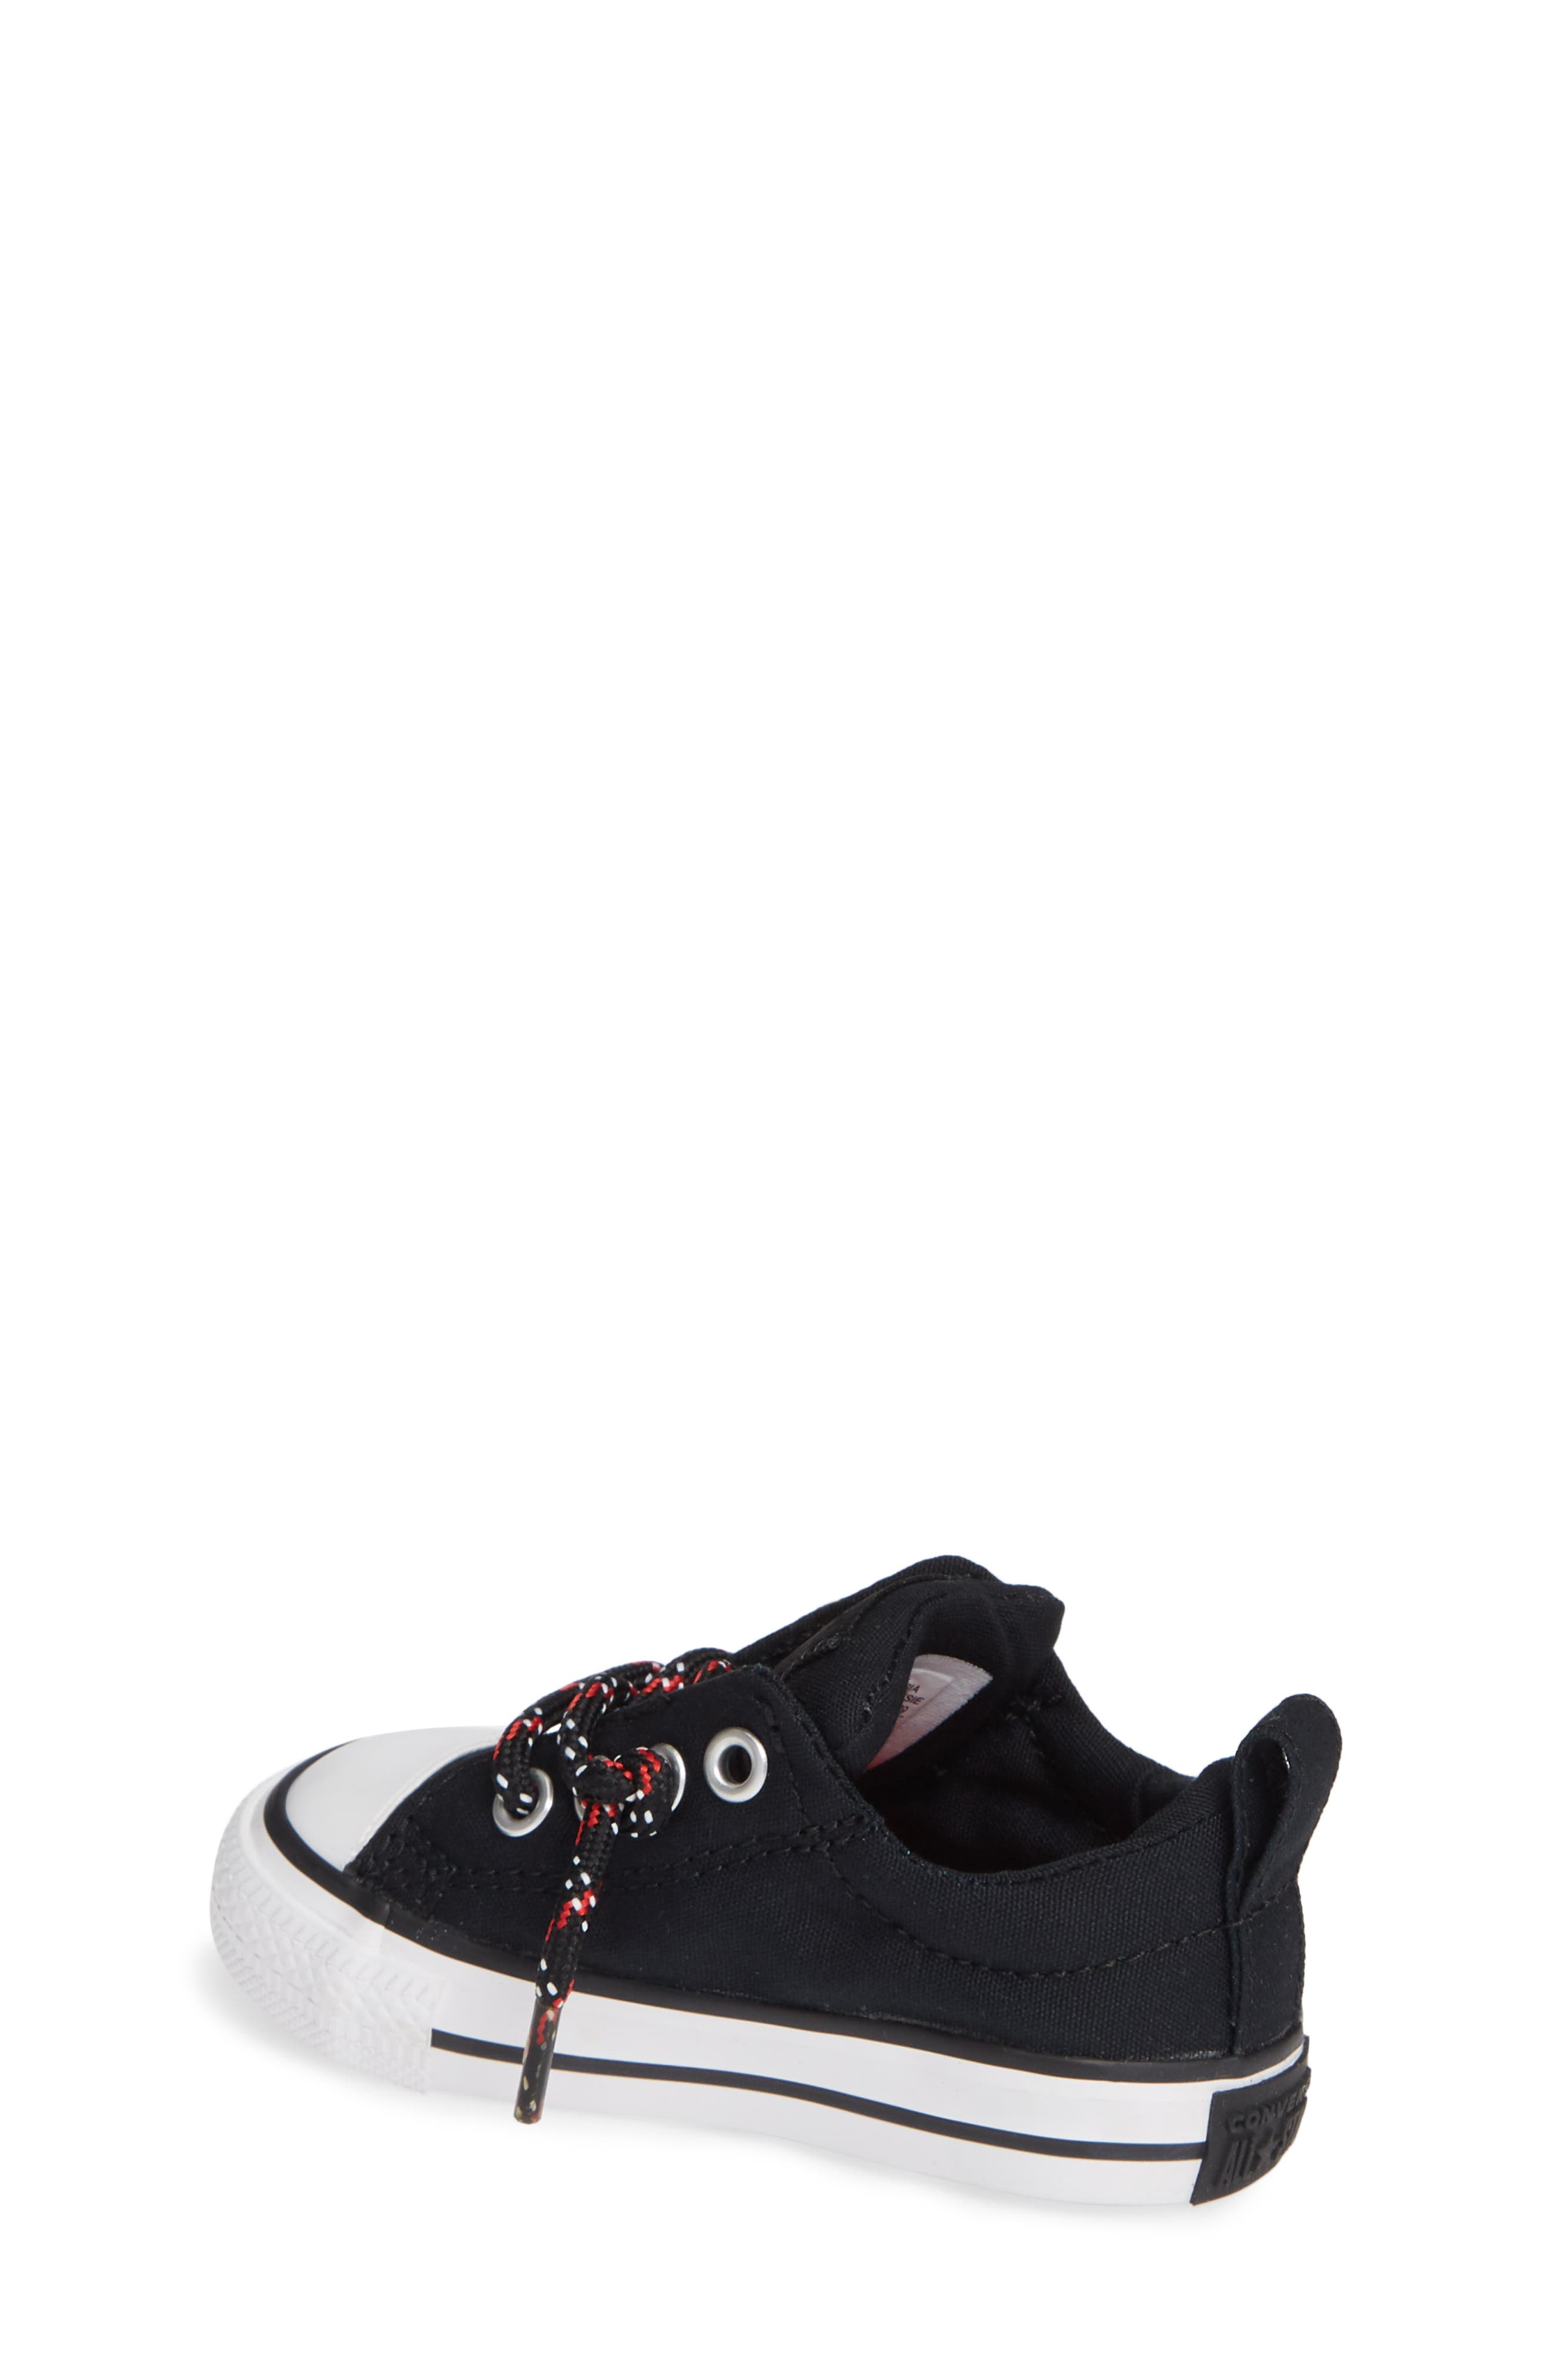 All Star<sup>®</sup> Graphite & Glitter Low Top Sneaker,                             Alternate thumbnail 2, color,                             002